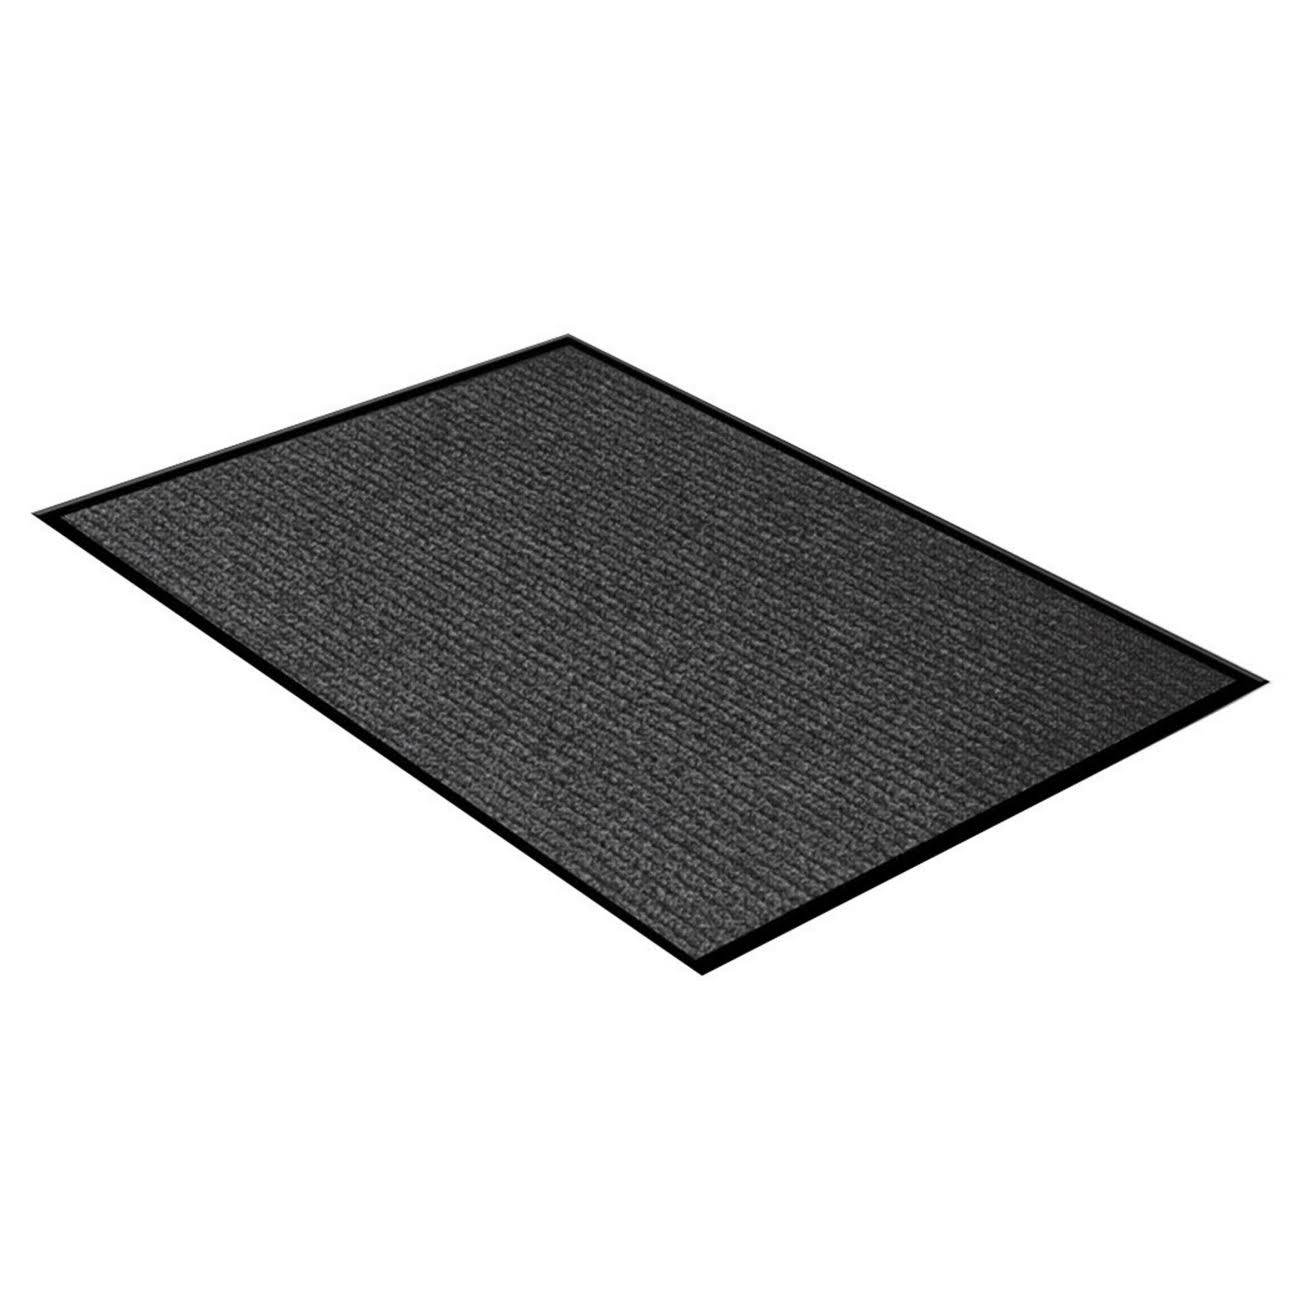 "WJ Dennis and Company Survivor Utility Carpet Mat - Dark Grey, 36"" X 48"""